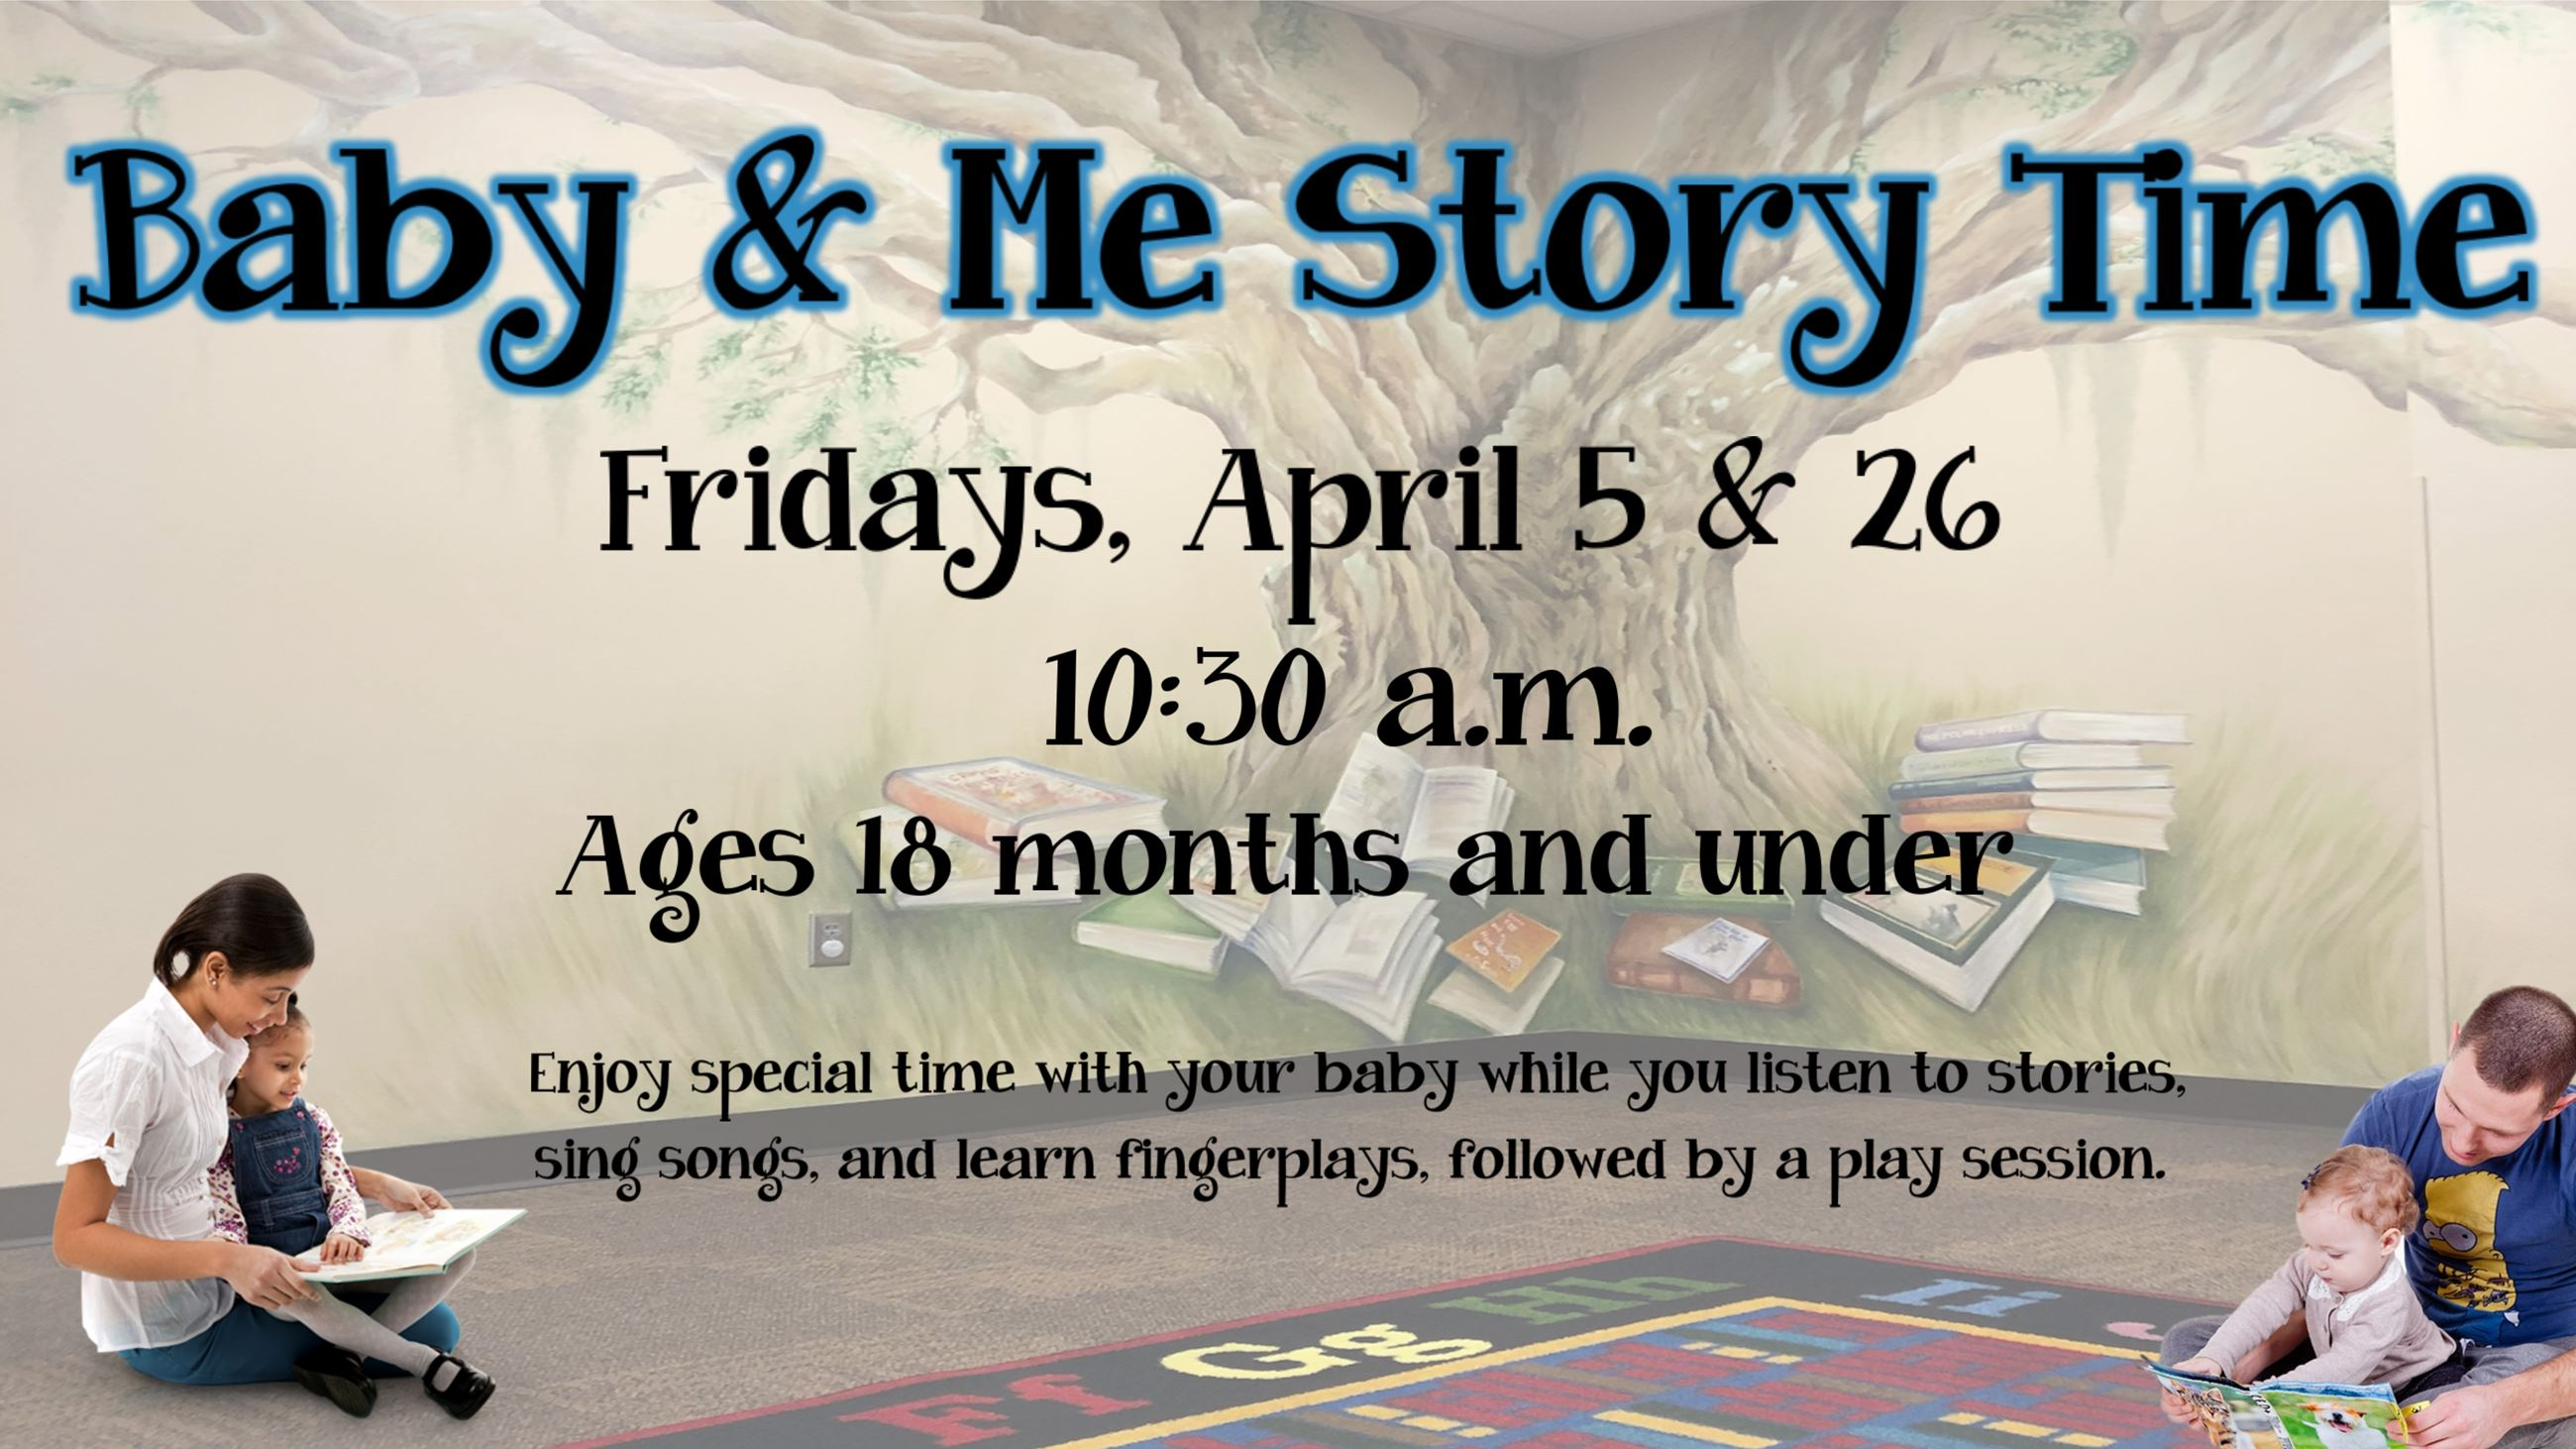 Baby and Me Story Time. Fridays April 5 & 26, 10:30 a.m. Ages 18 months & under.